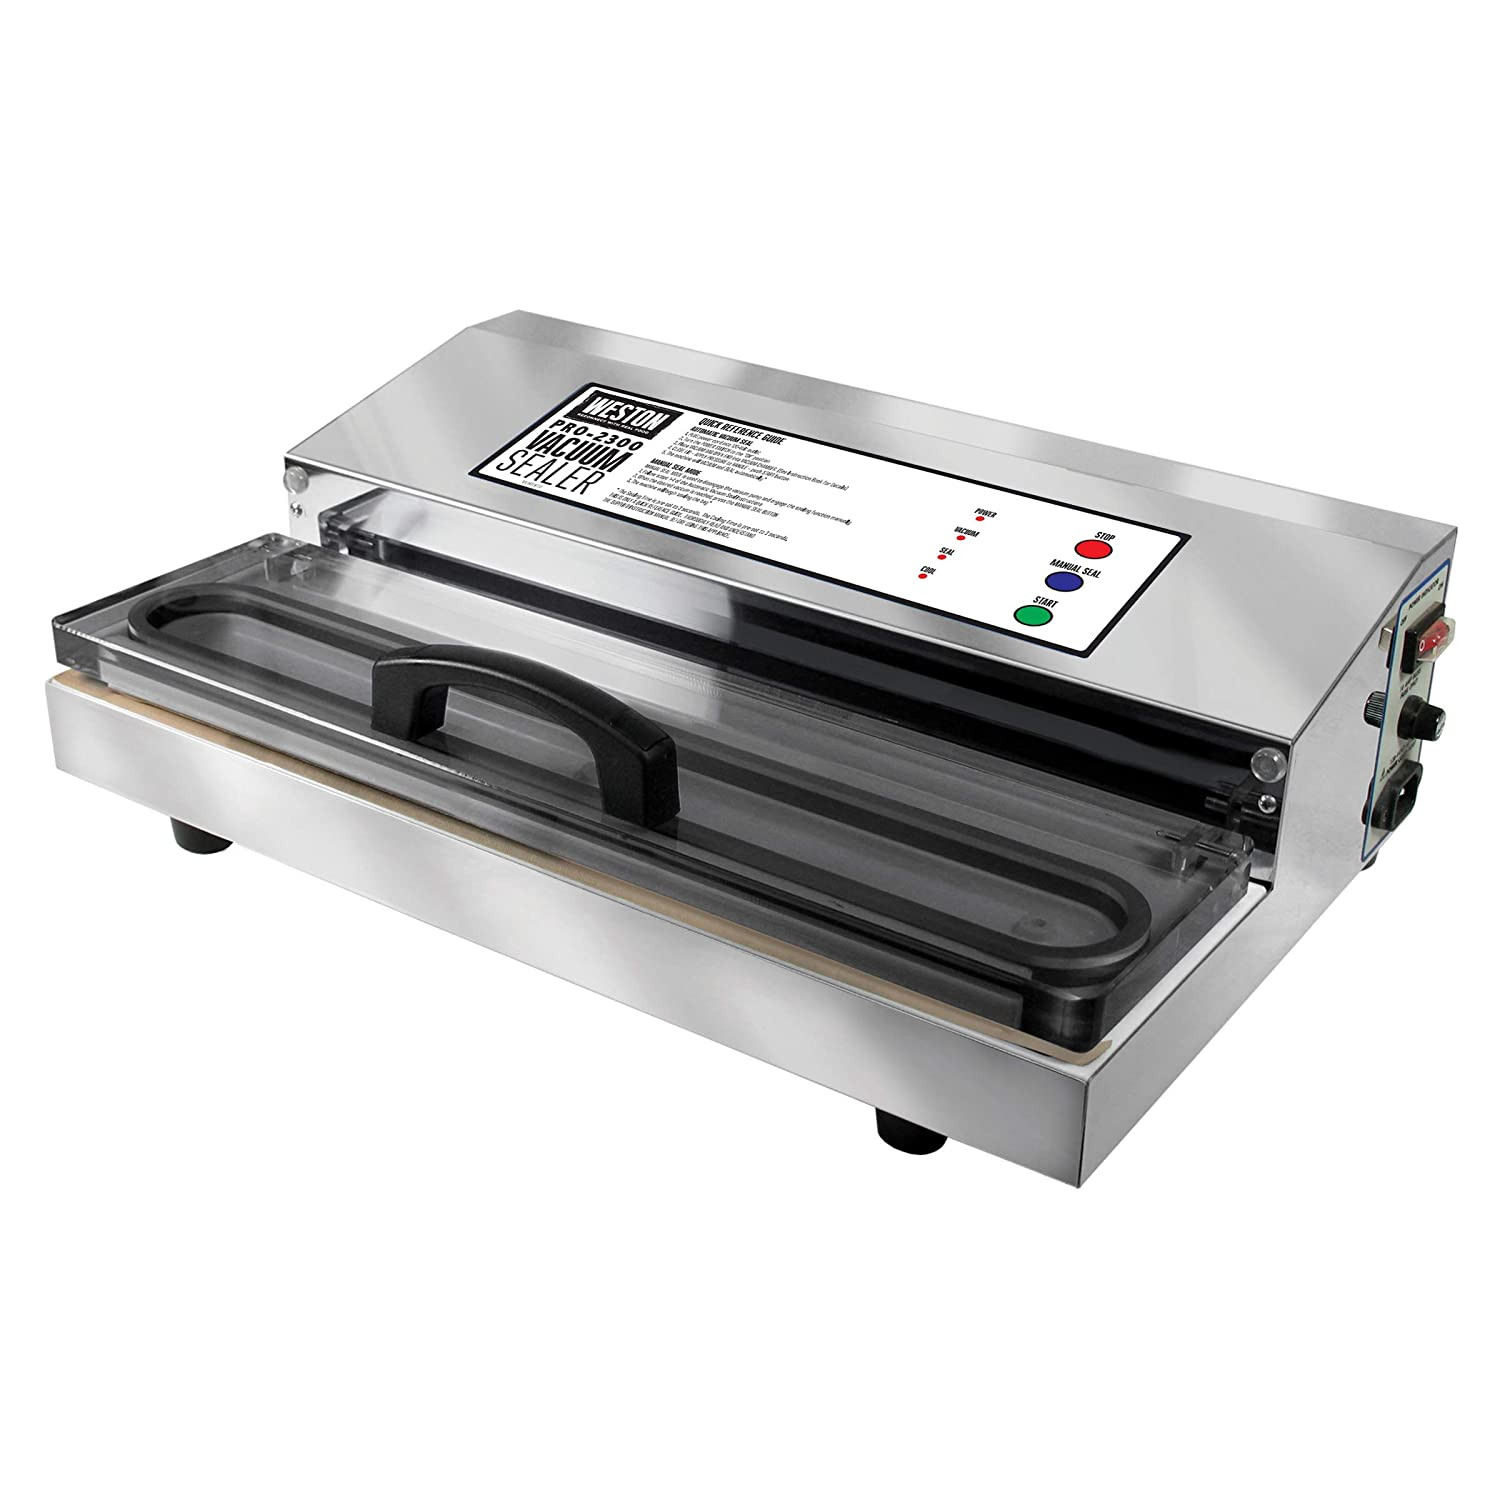 Top 10 Best Vacuum Sealers (2020 Reviews & Buying Guide) 4